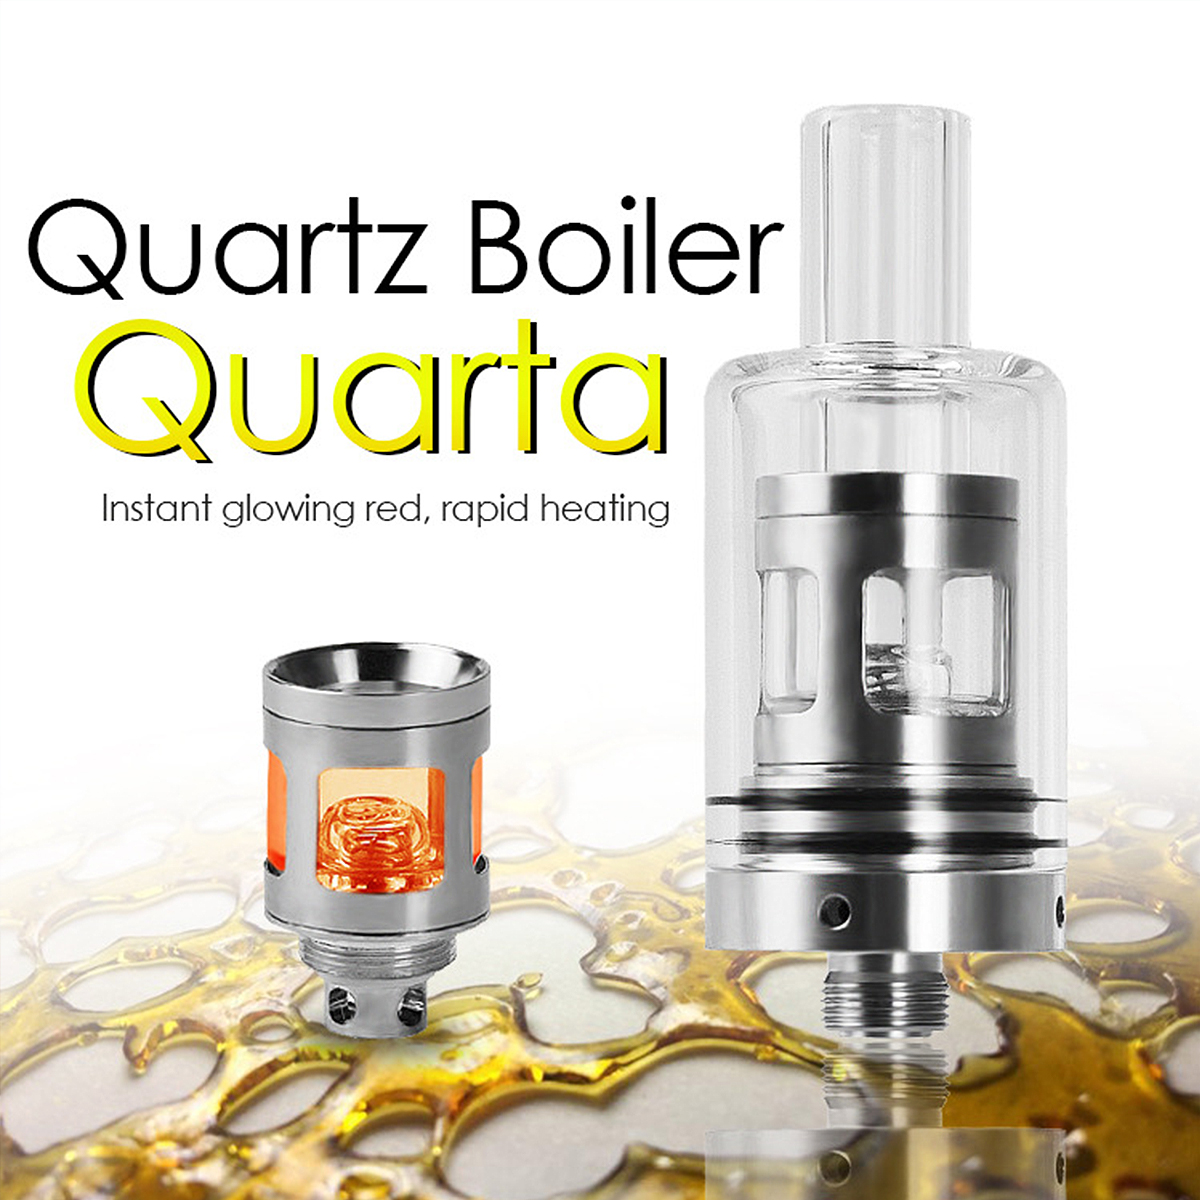 Longmada Tank Quarta 510 Threaded Atomizer Quartz Boiler Coil-Less Chamber Sprayer